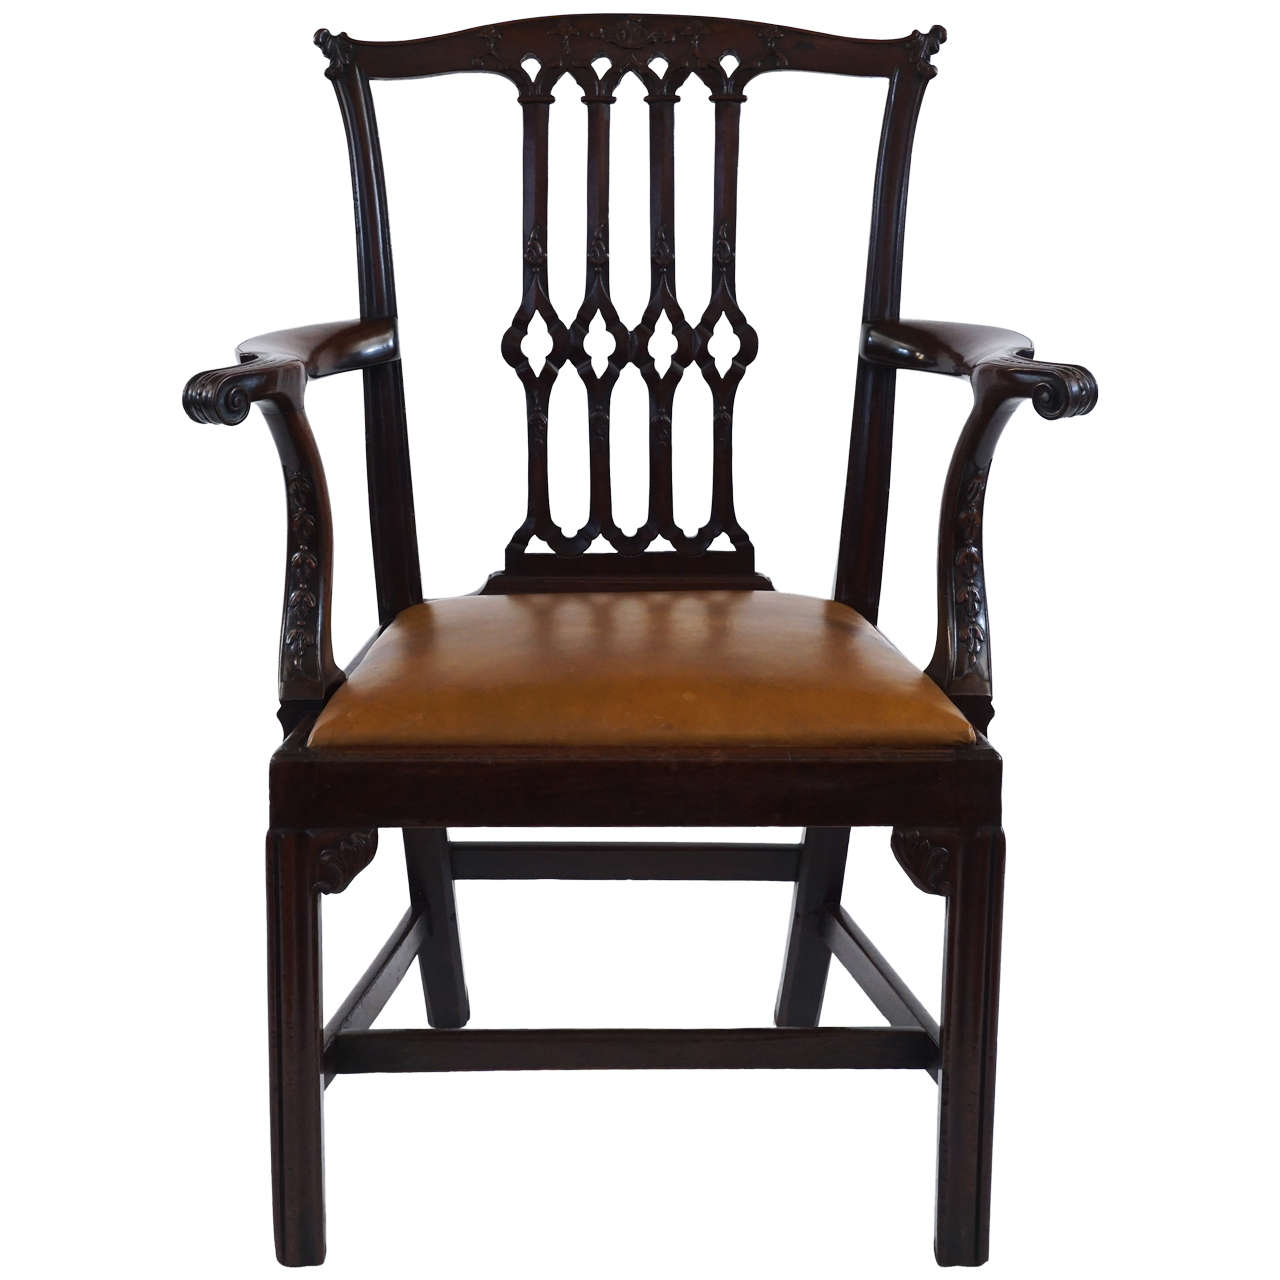 Gothic Chippendale Mahogany Armchair, England, circa 1770